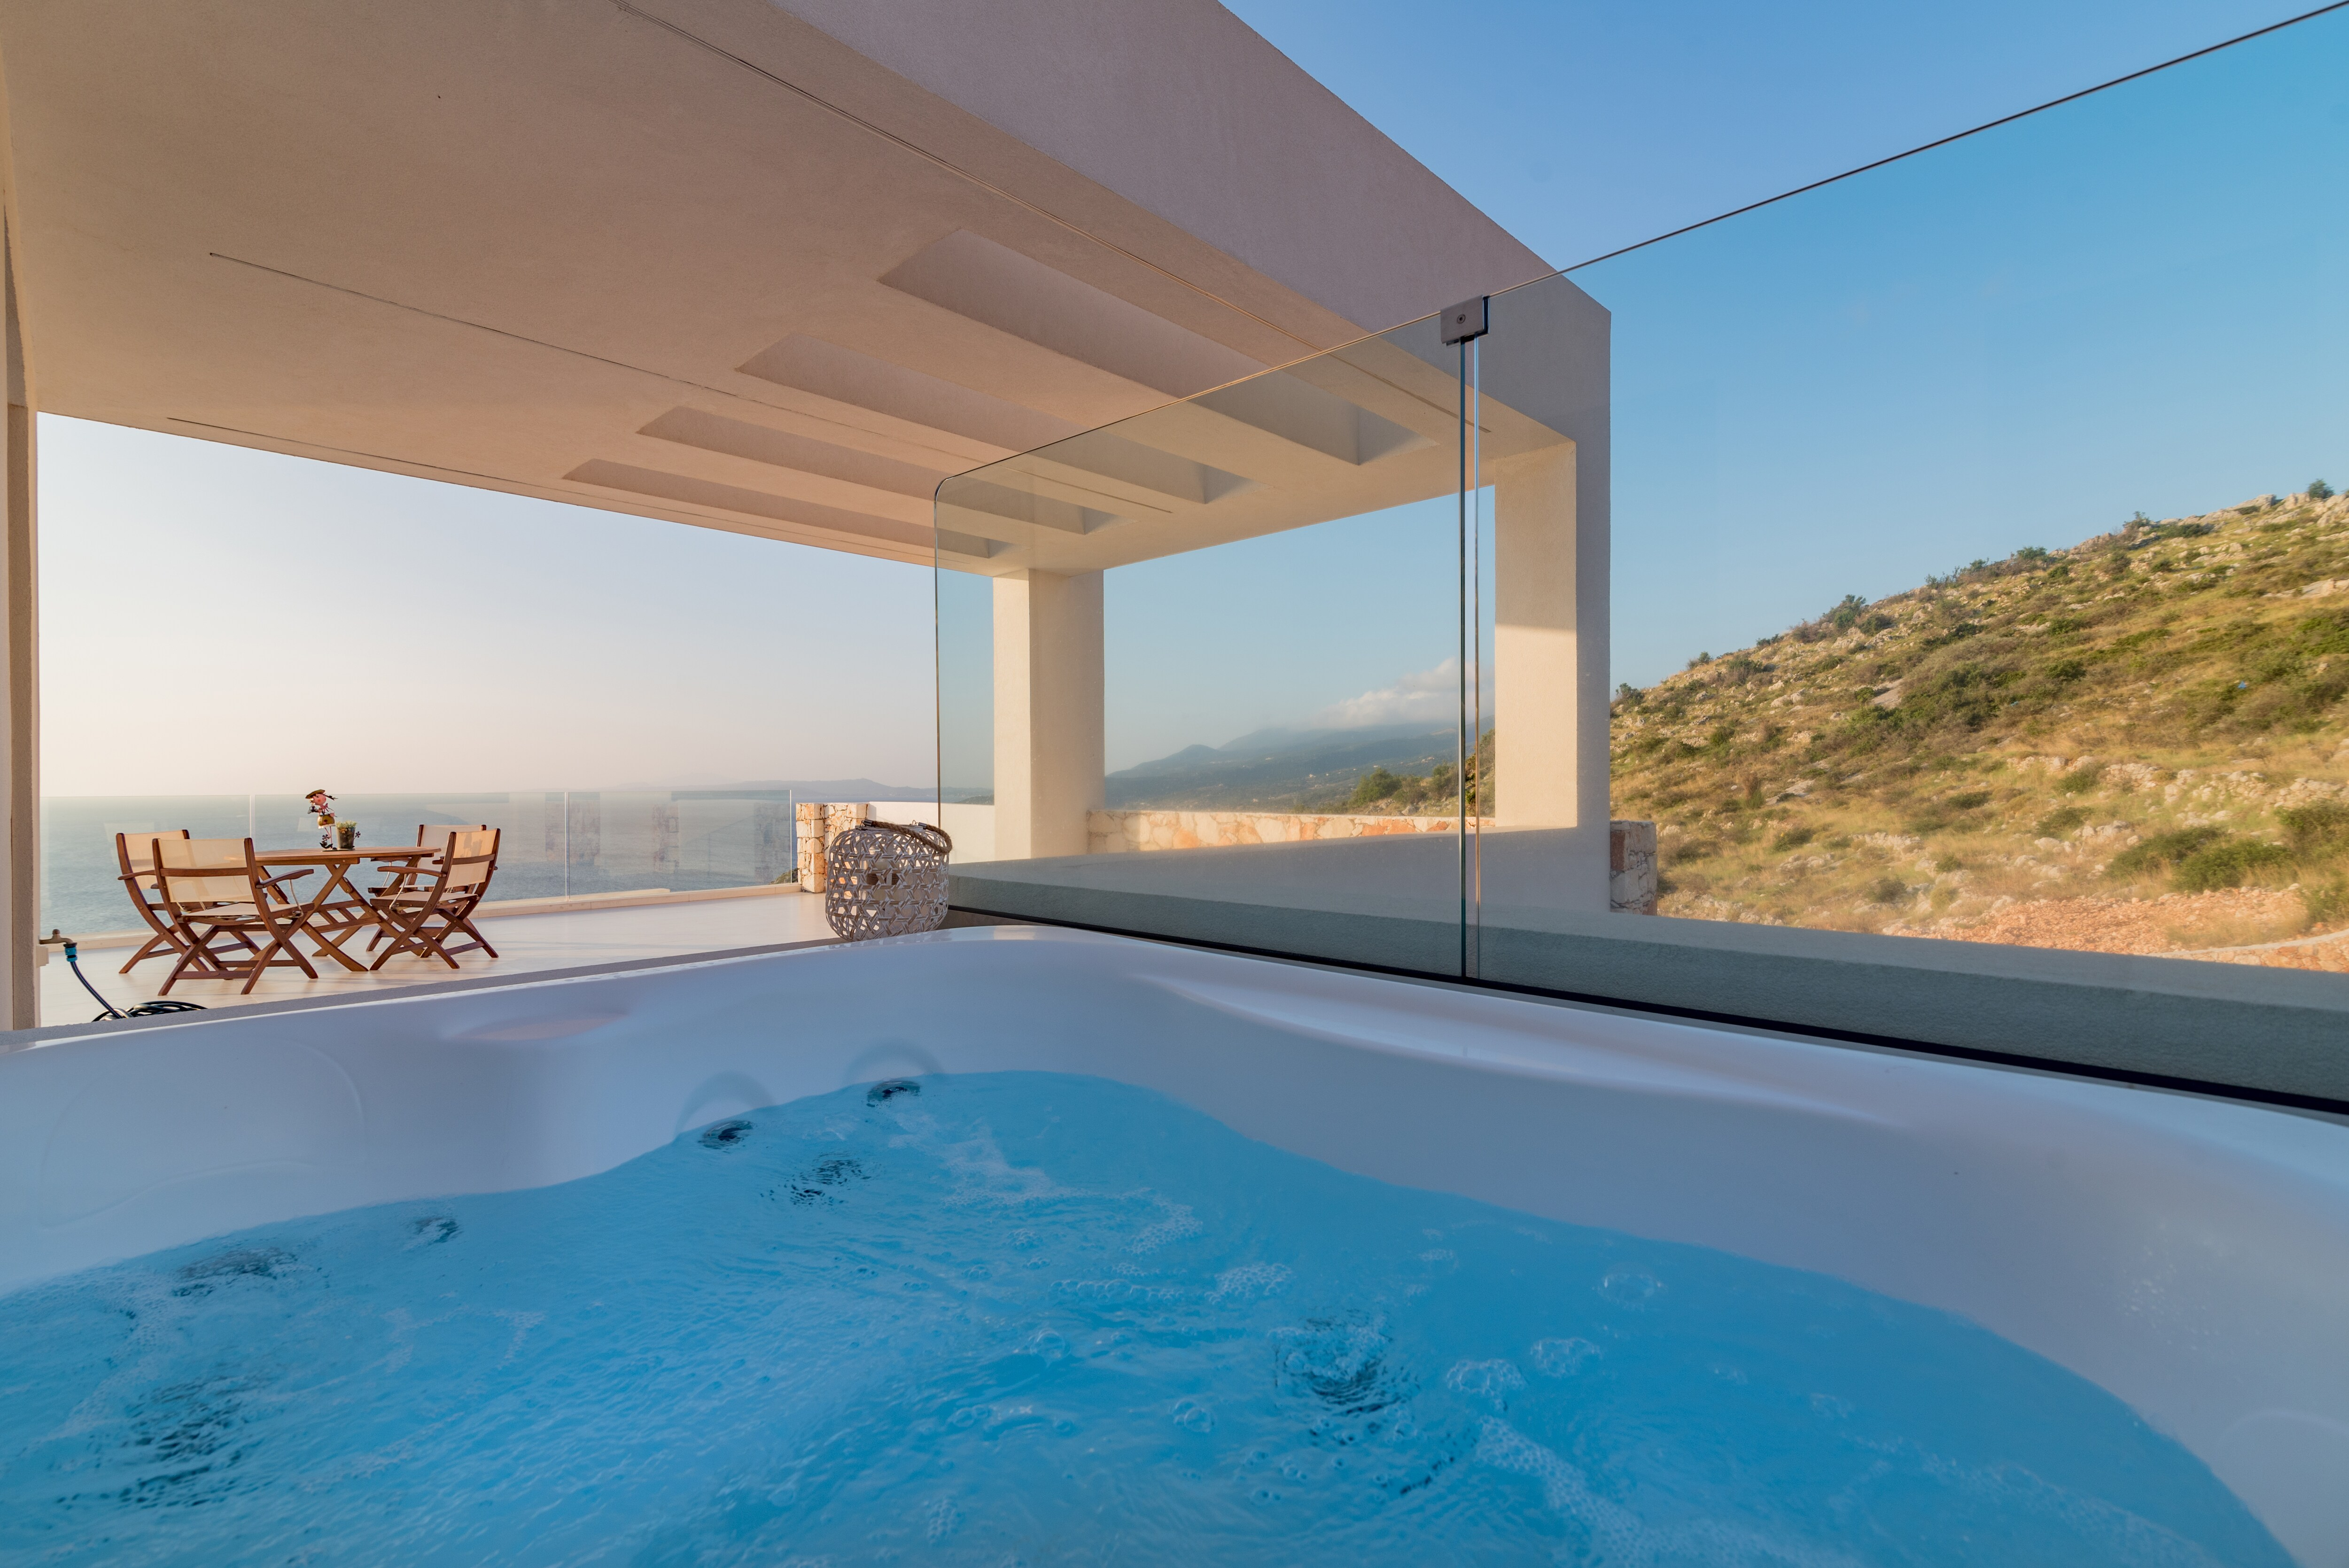 Property Image 1 - Natural Hilltop Luxury Villa with Private Pool